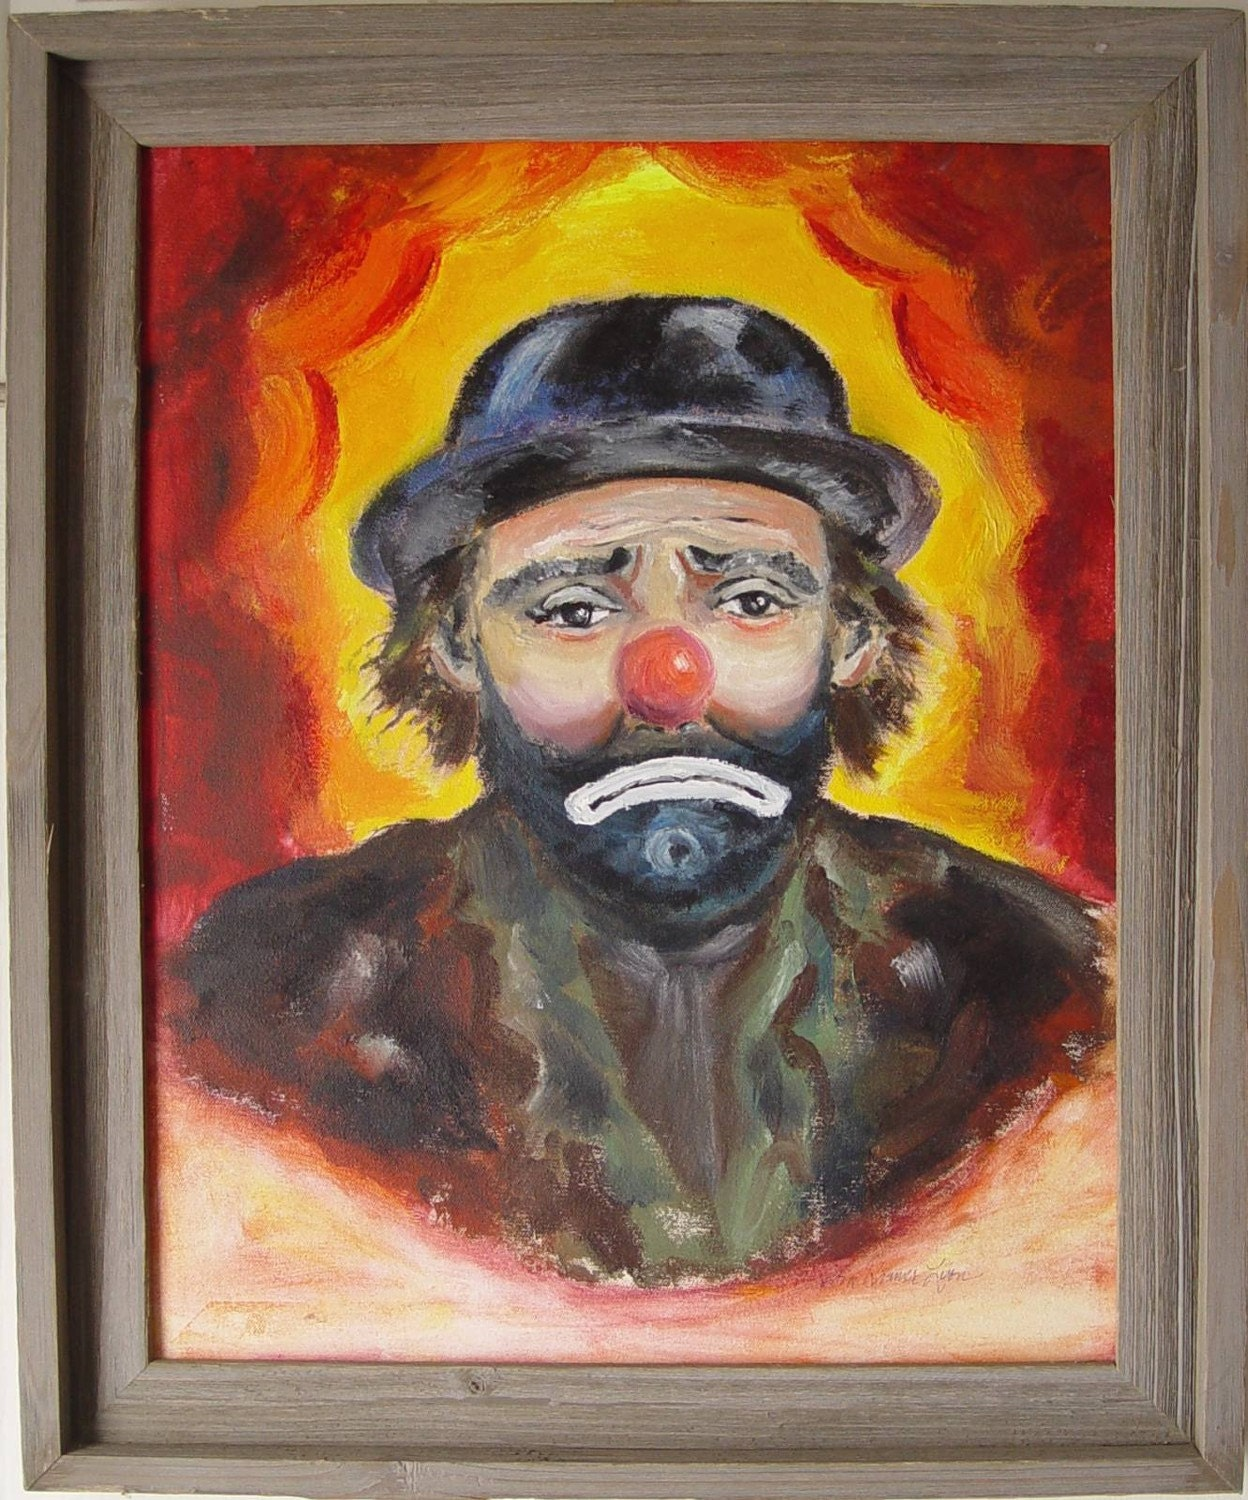 Emmett Kelly OIL CLOWN Painting Rustic Barn Wood Frame